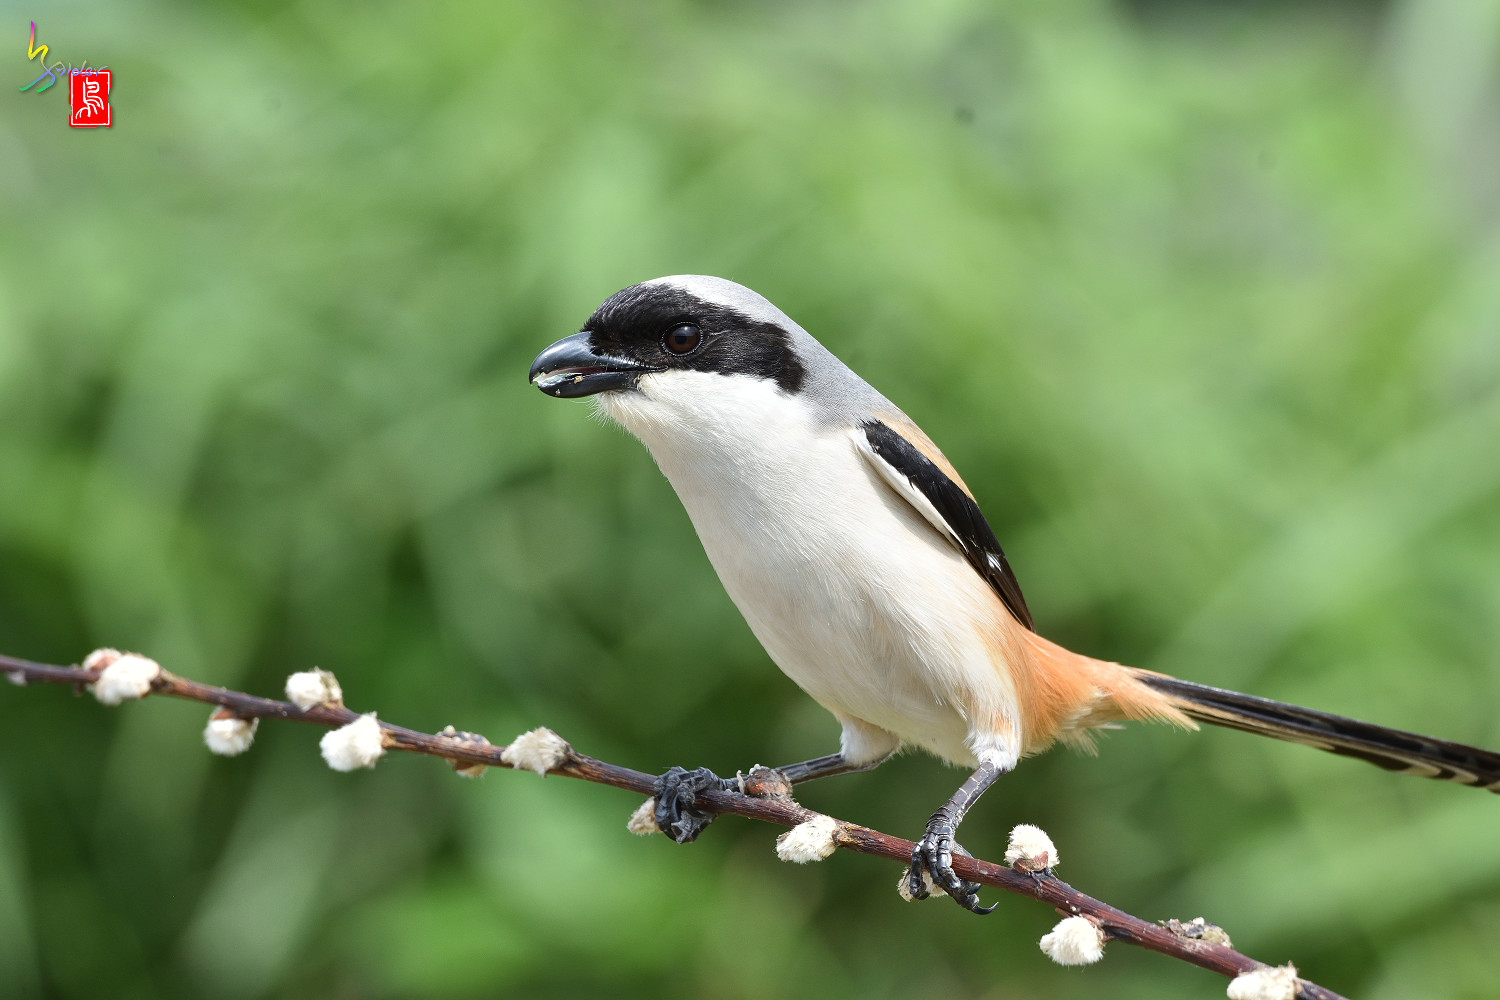 Long-tailed_Shrike_5634